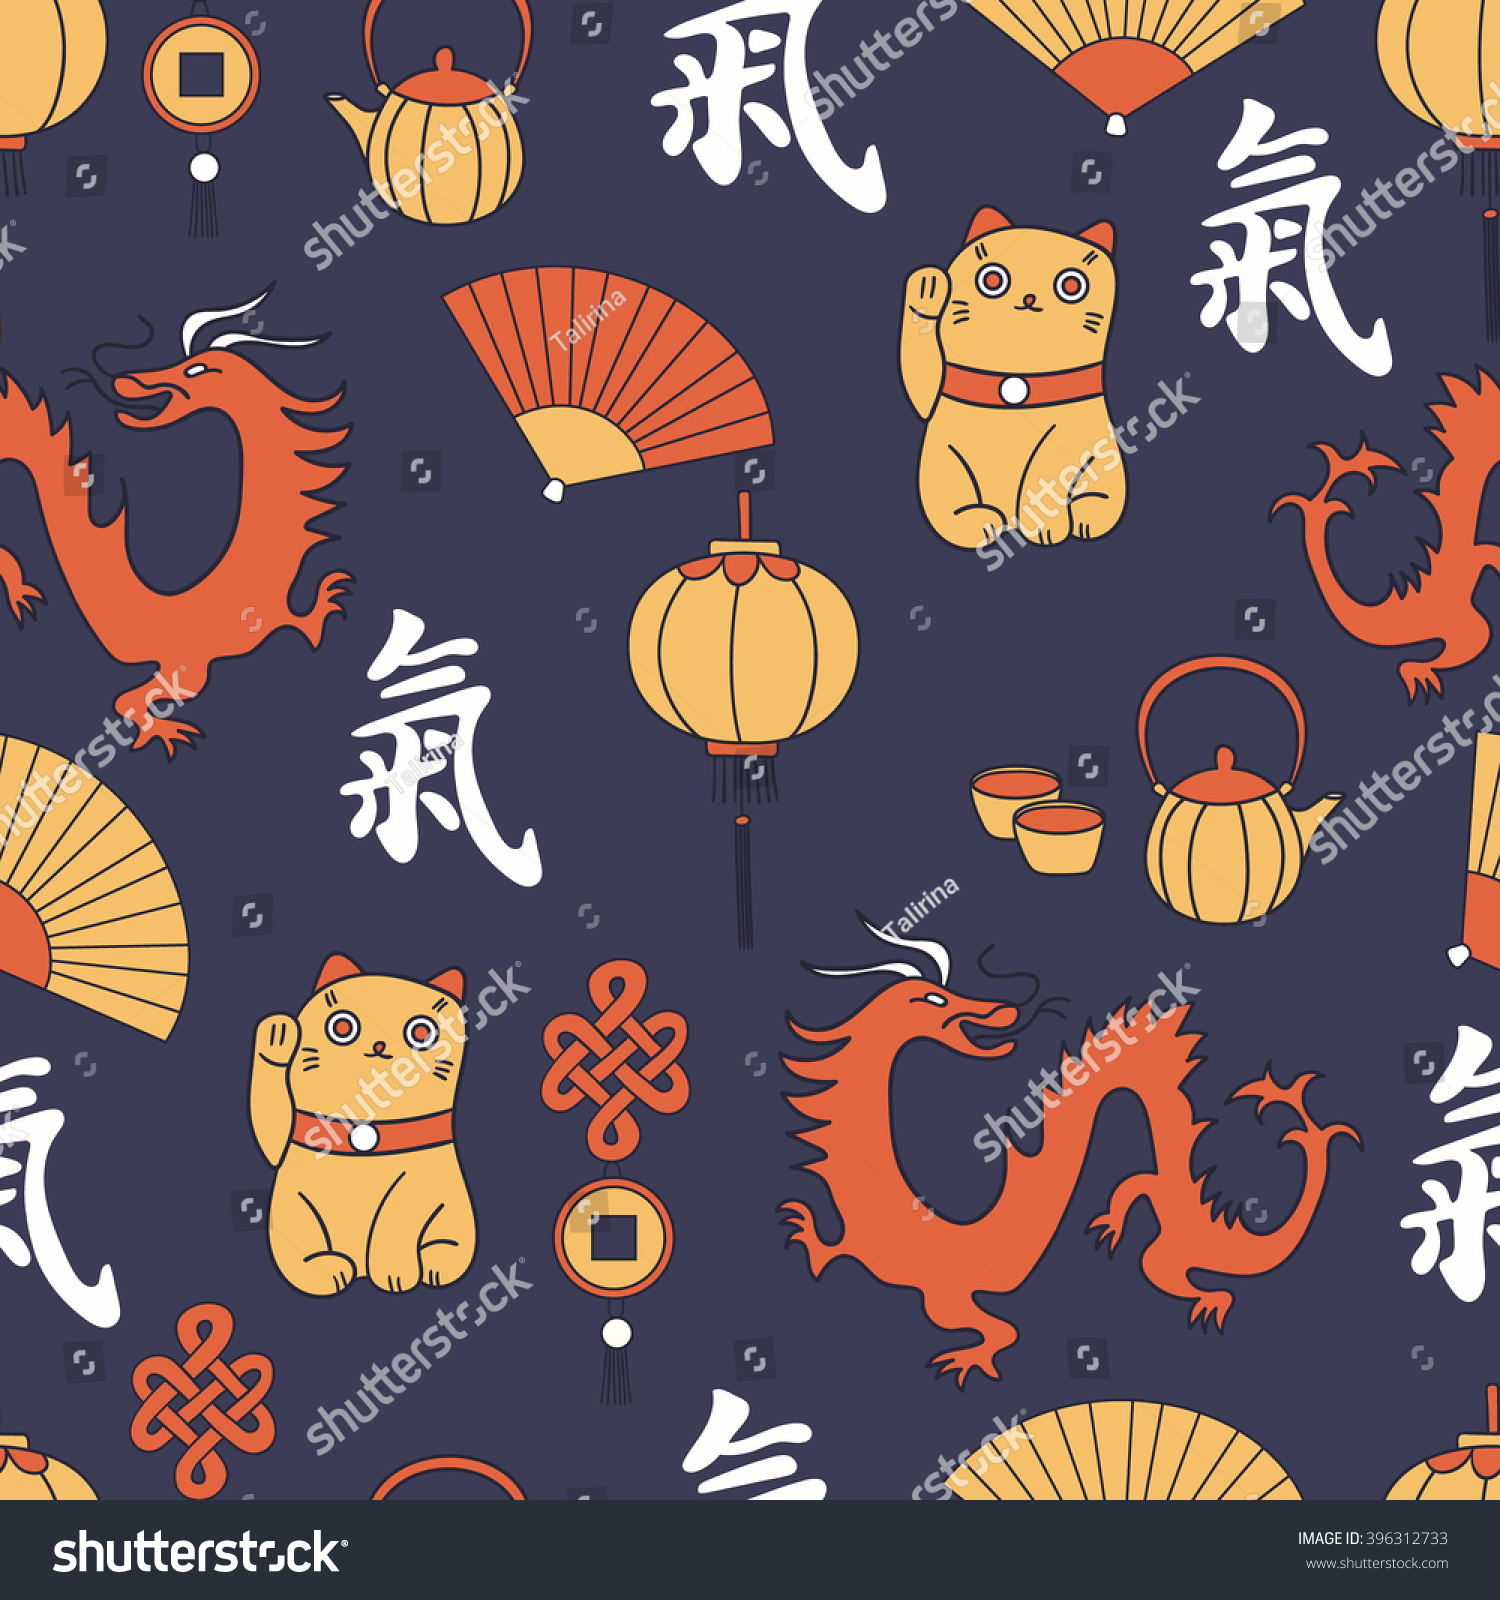 Chinas Icons Hand Drawn Seamless Pattern Stock Vector 396312733